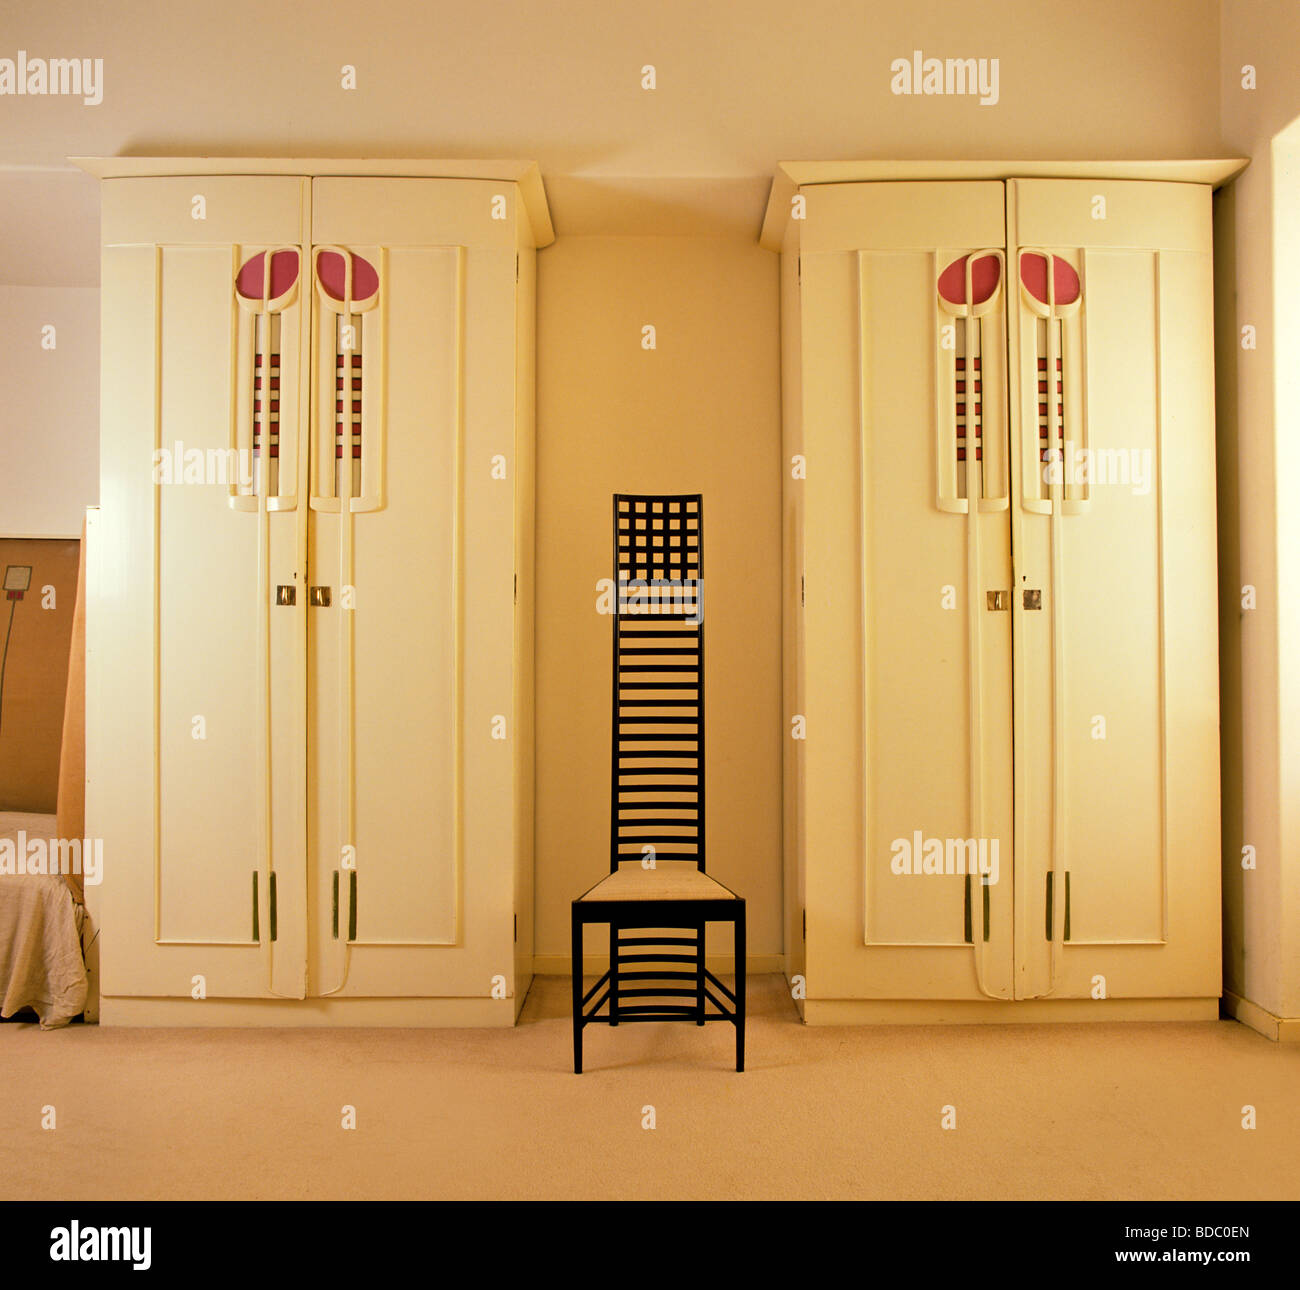 m bel von charles rennie mackintosh im the hill house stockfoto bild 25464733 alamy. Black Bedroom Furniture Sets. Home Design Ideas